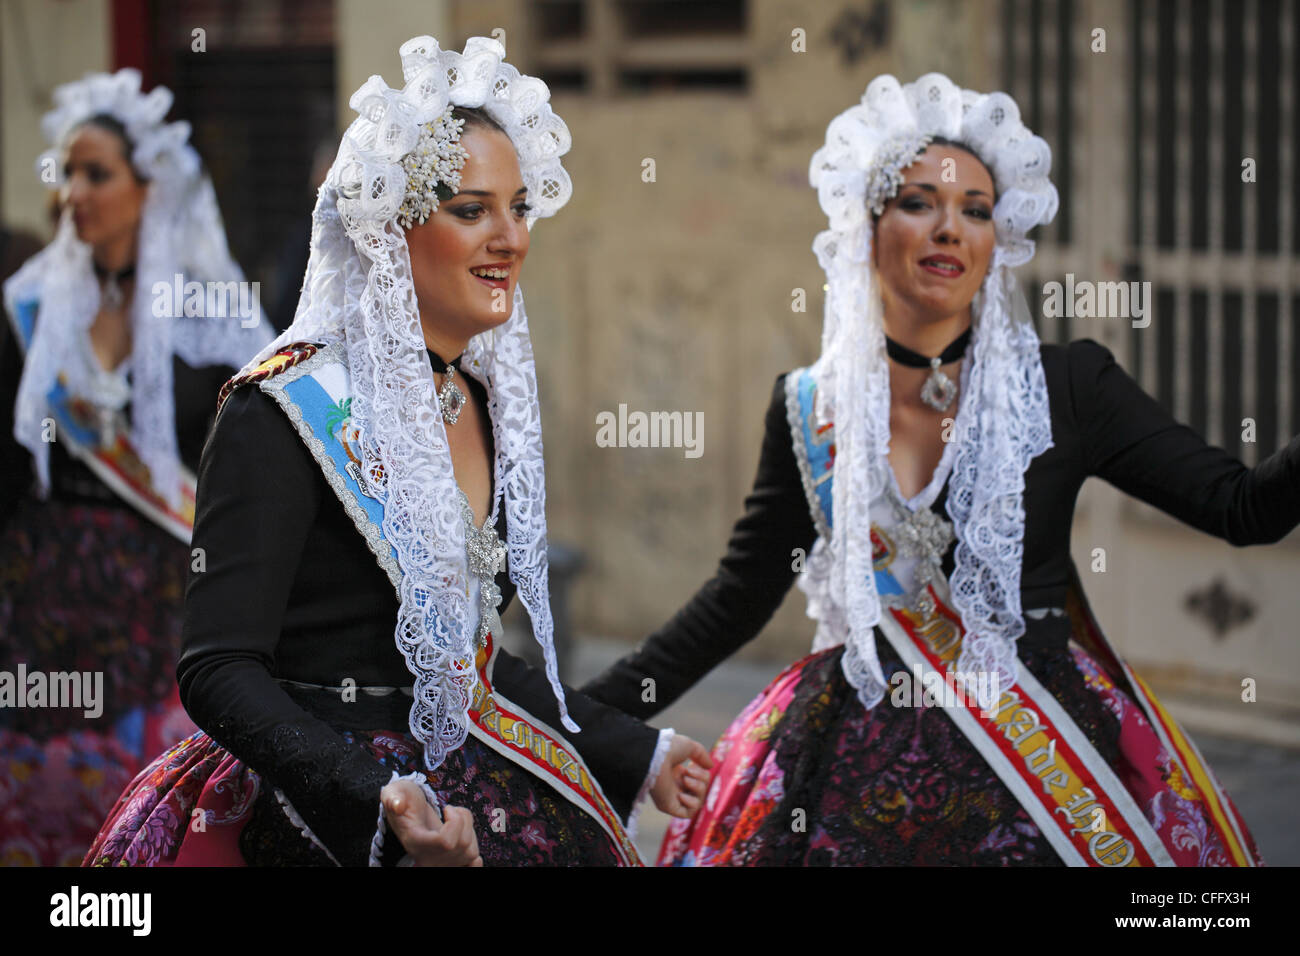 Spanish Women Wearing Traditional Clothes During The